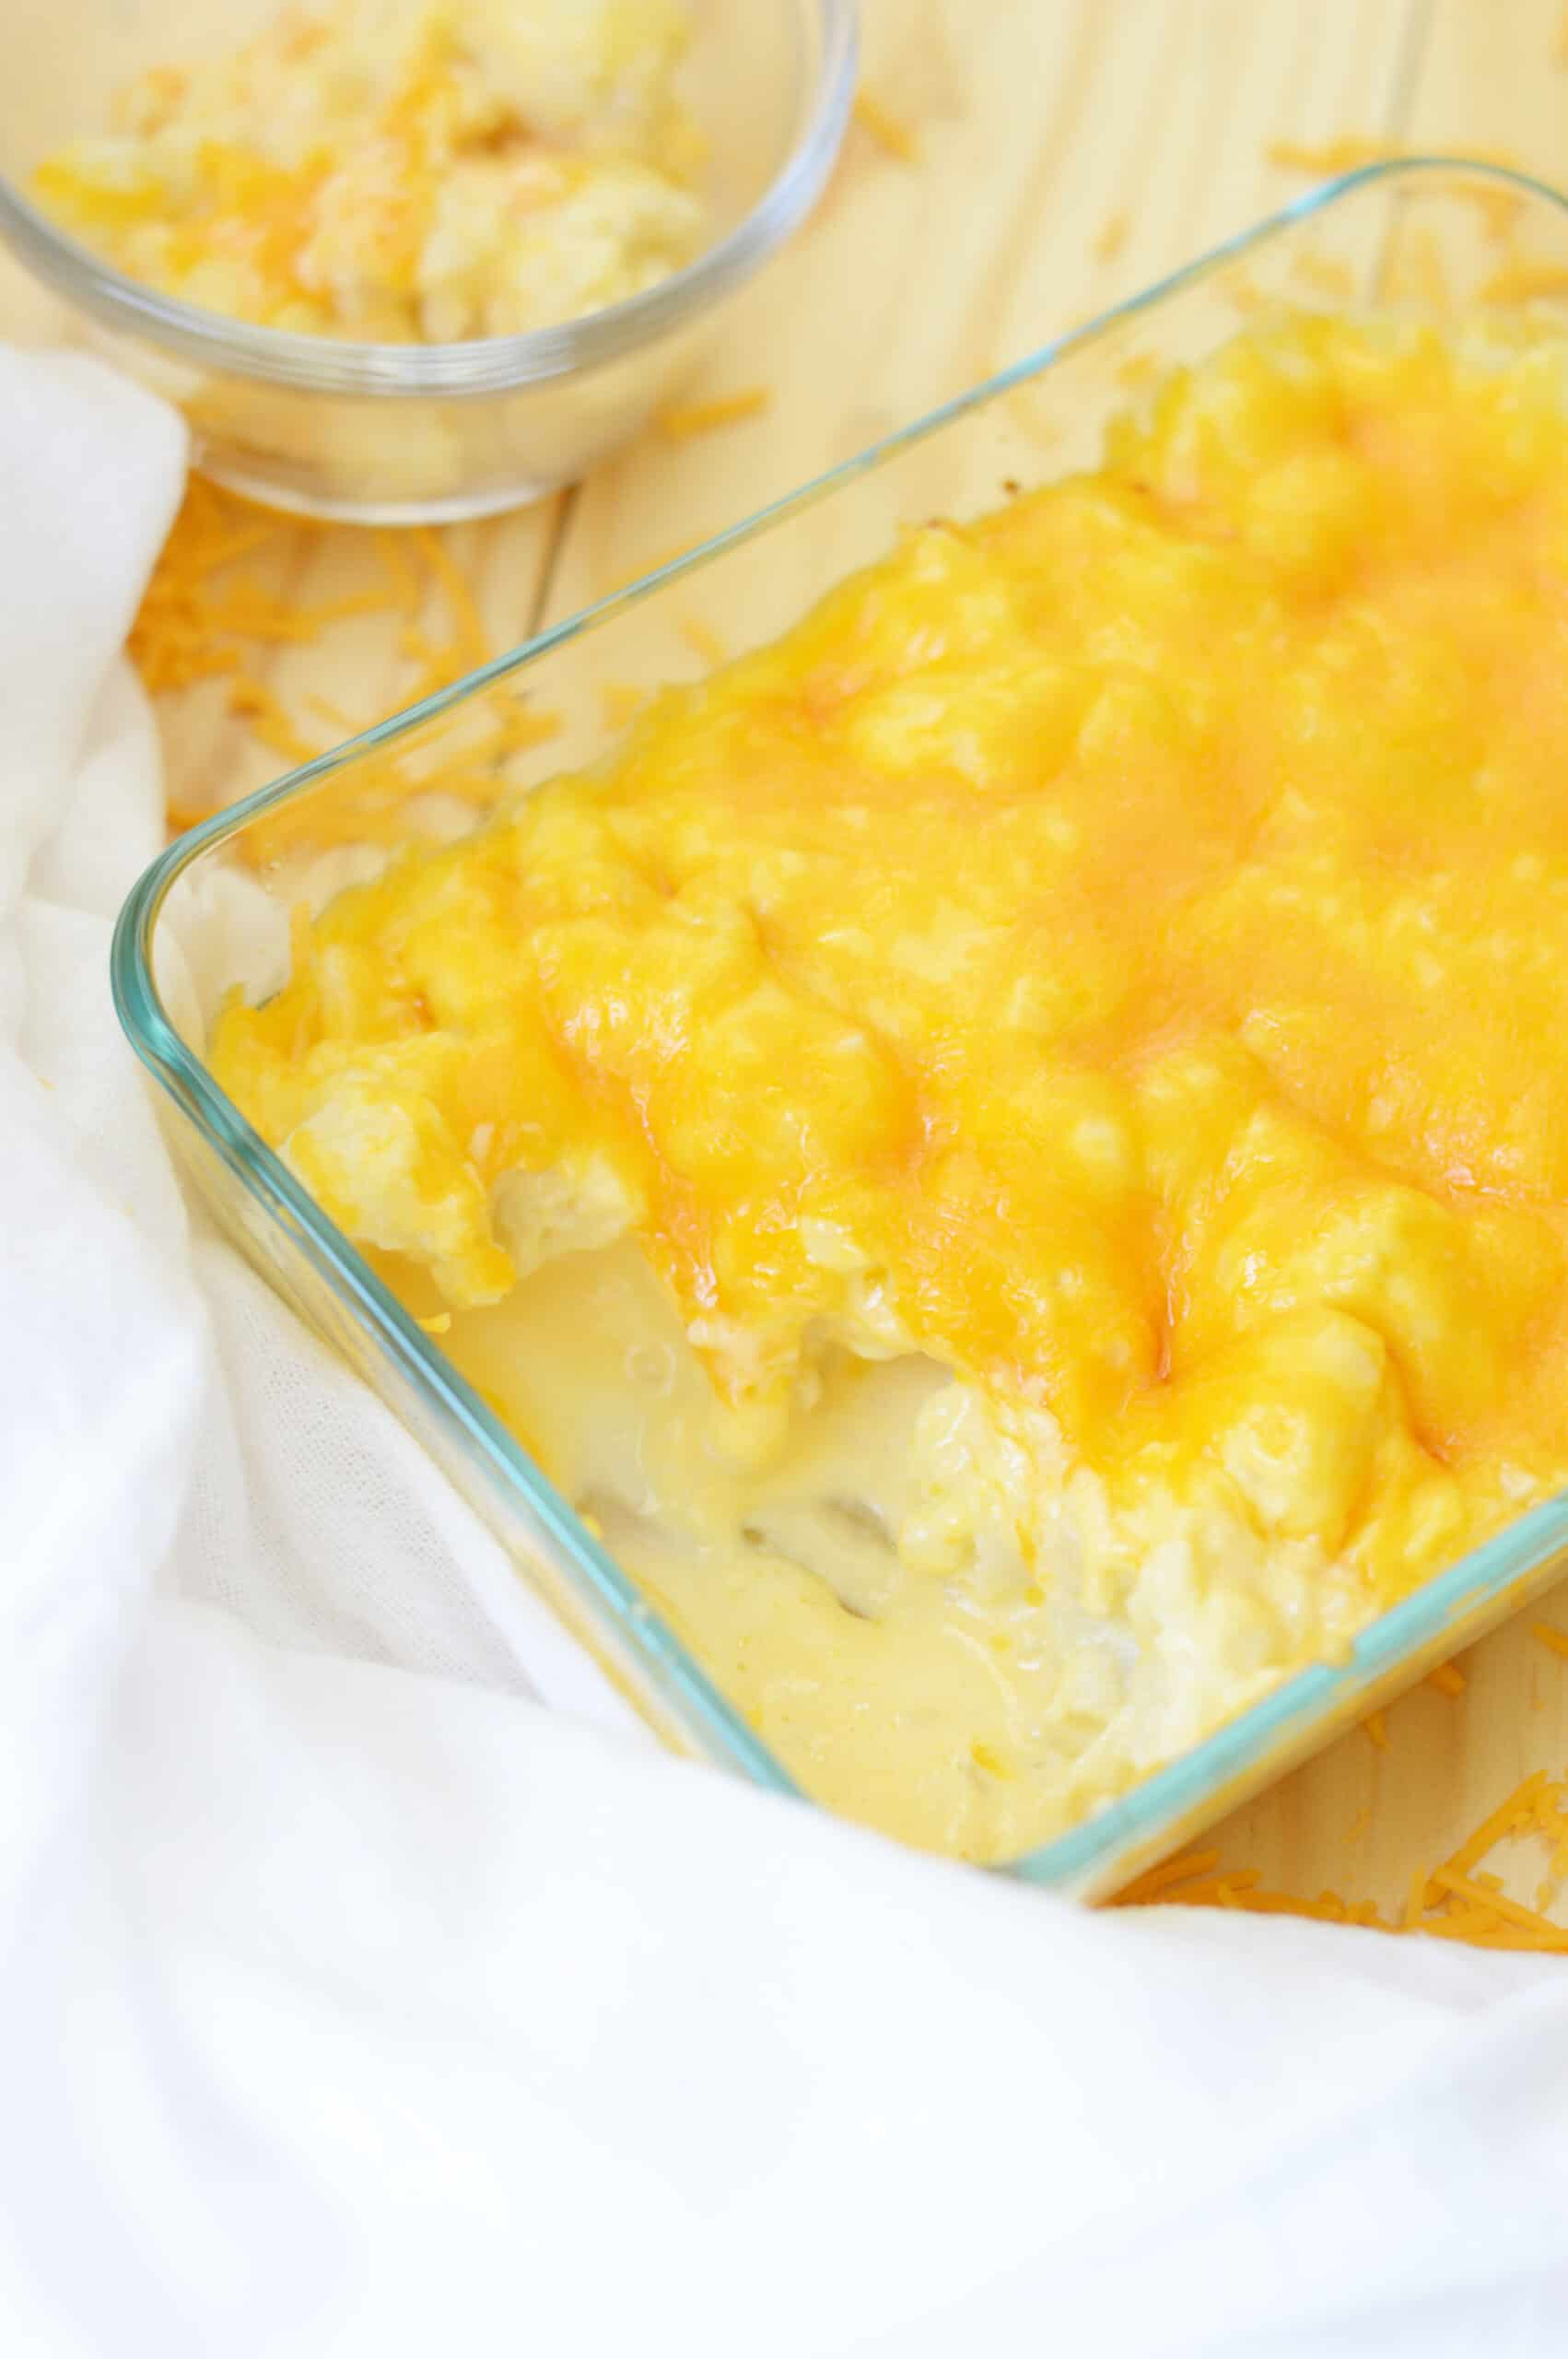 A dish filled with Mac and cheese